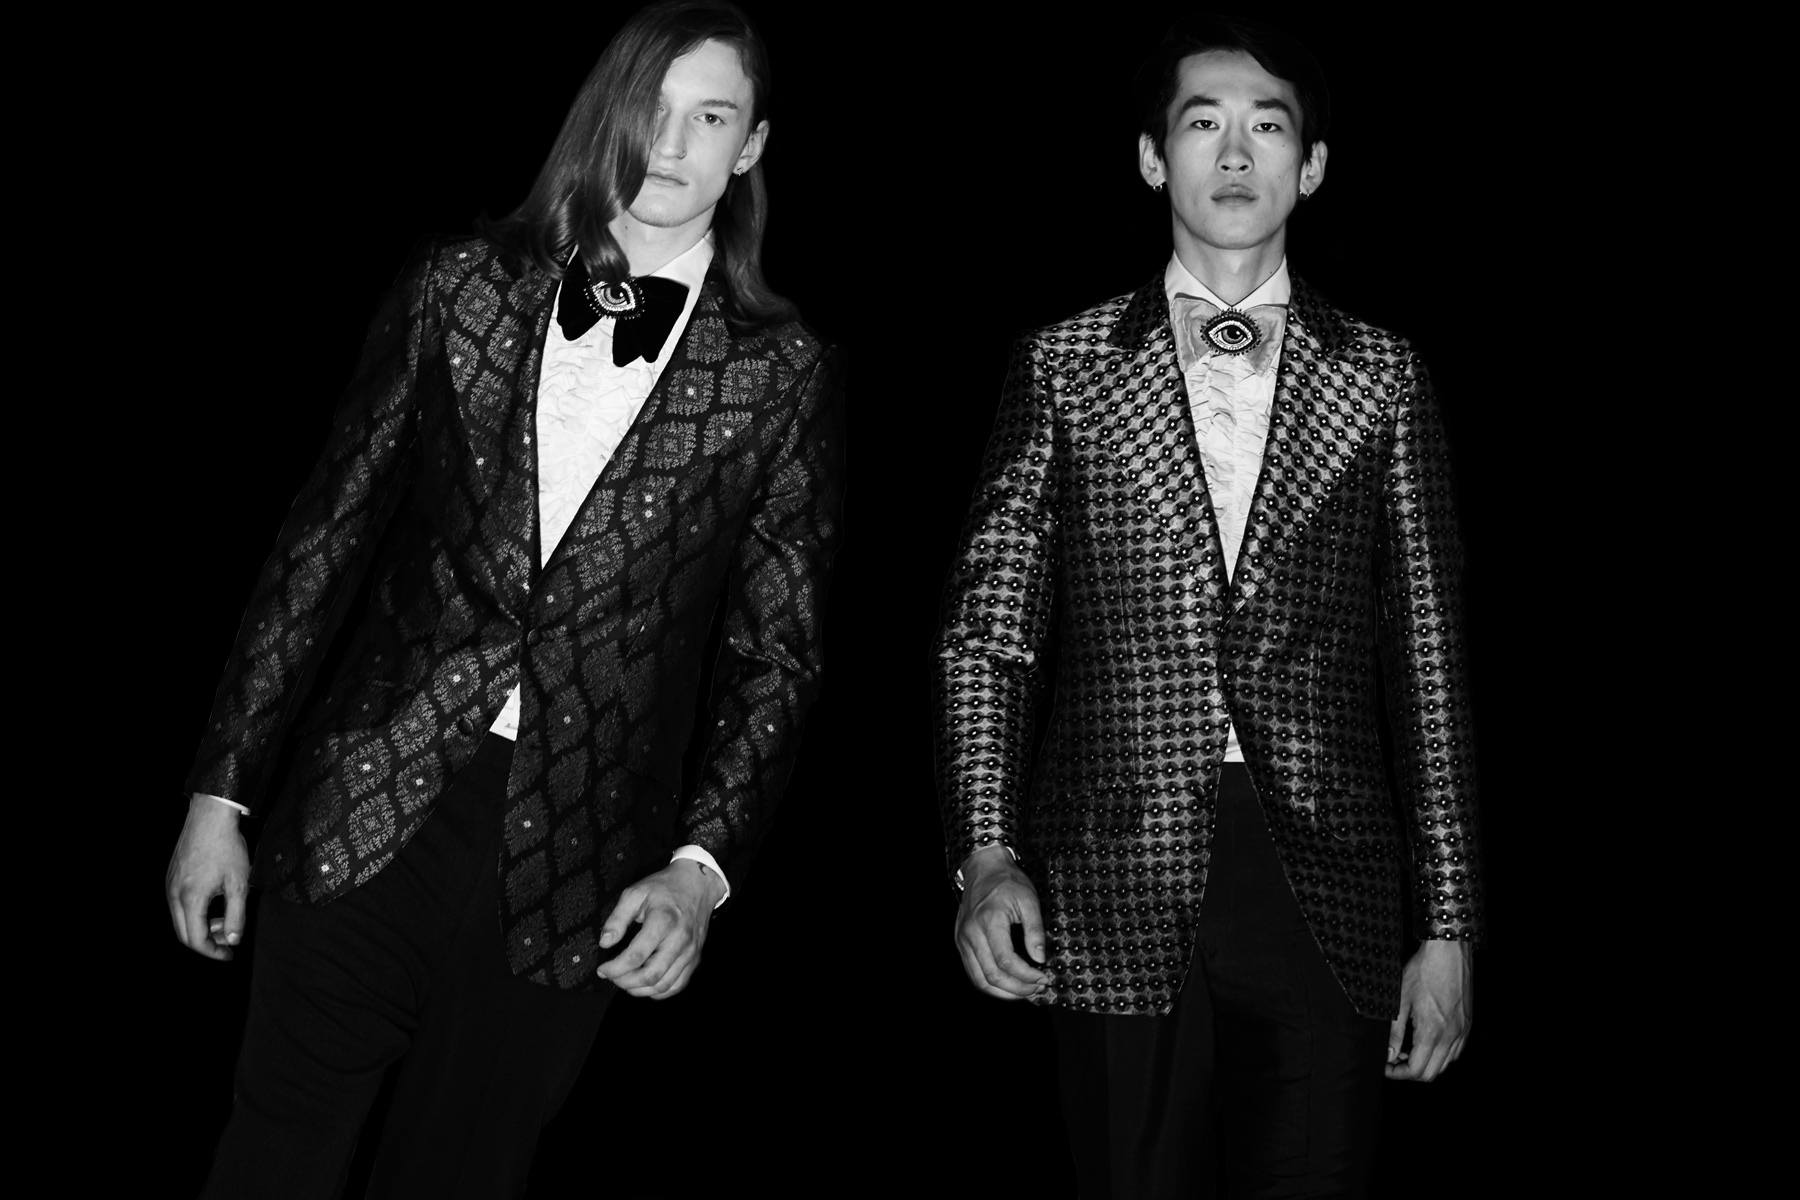 Tuxedos at David Hart for Spring/Summer 2019. Photography by Alexander Thompson for Ponyboy magazine.